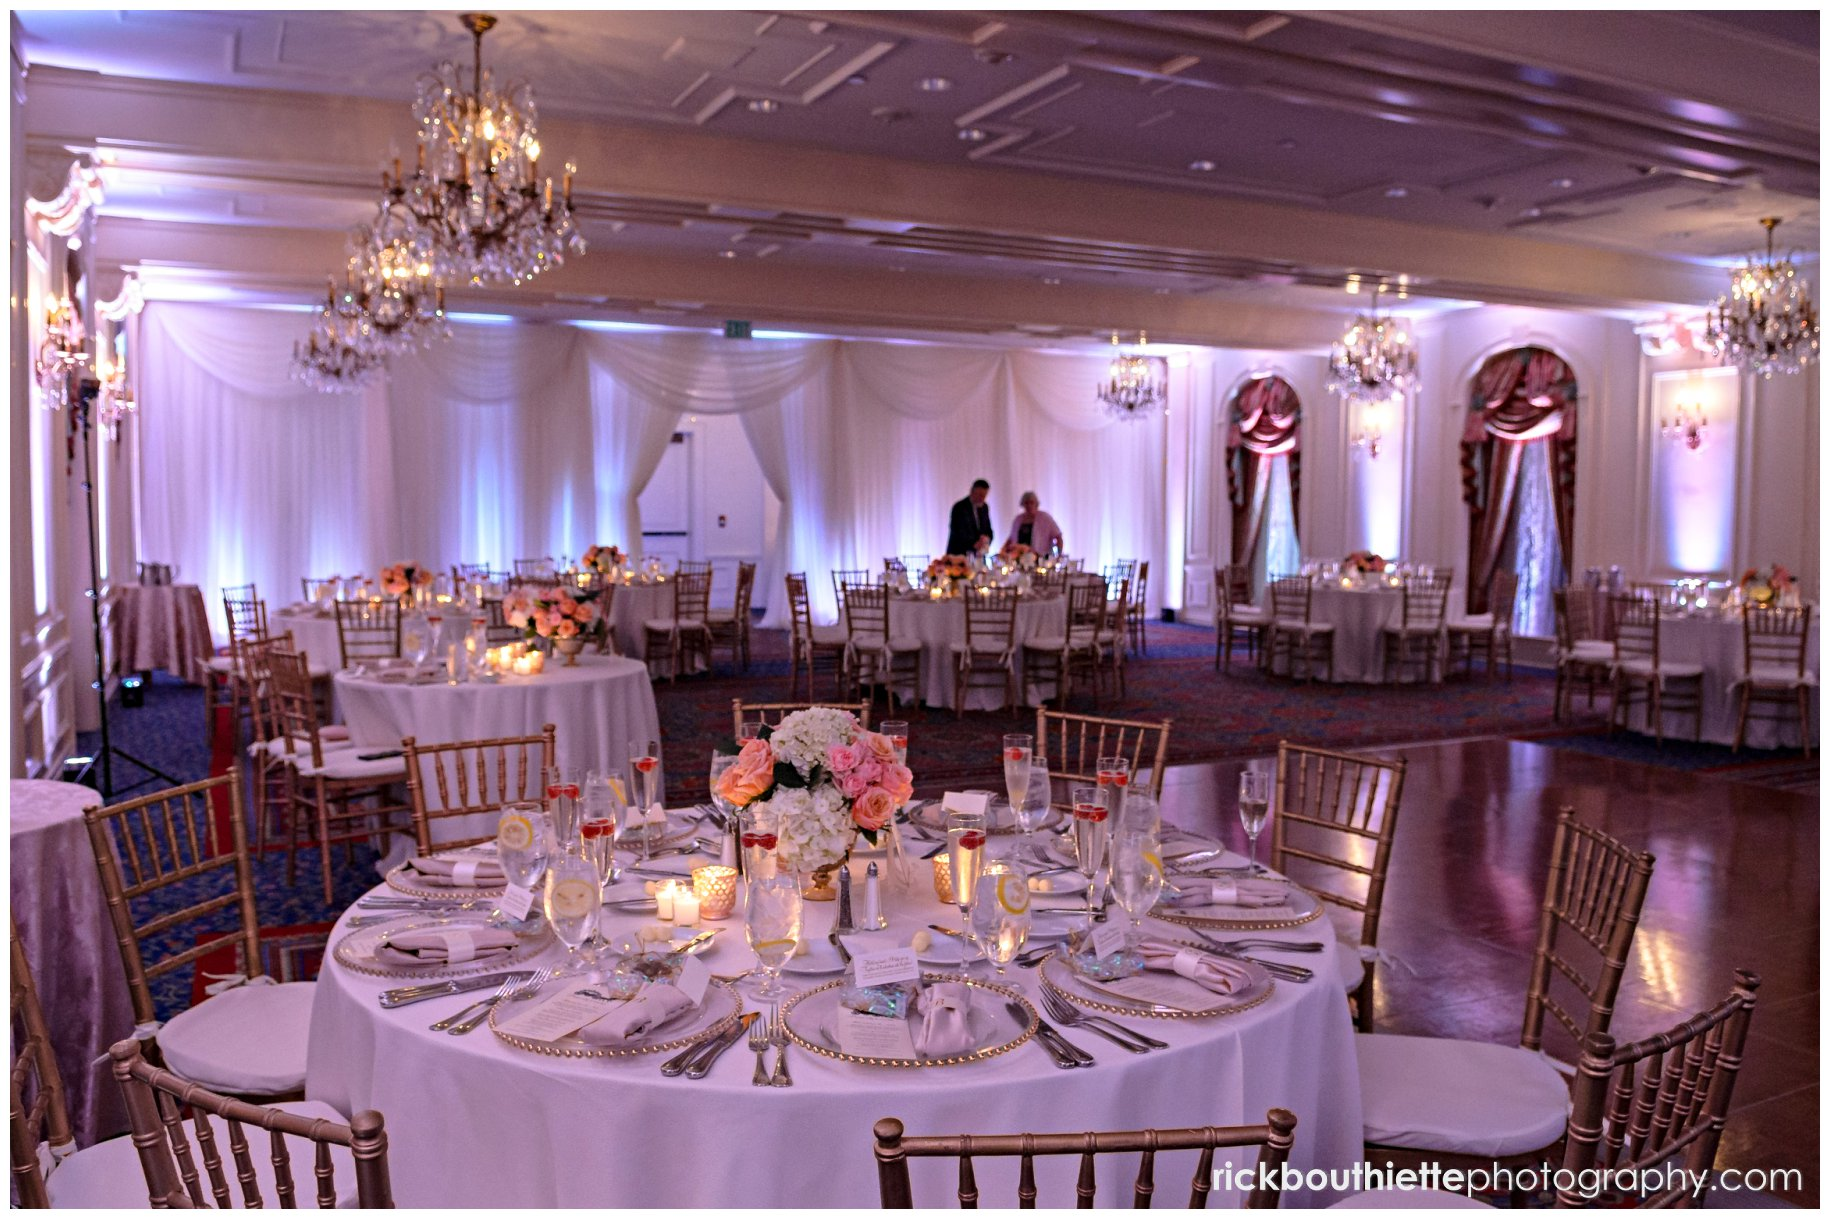 The Grand Ballroom At Wentworth By Sea Decorated For A Wedding Reception